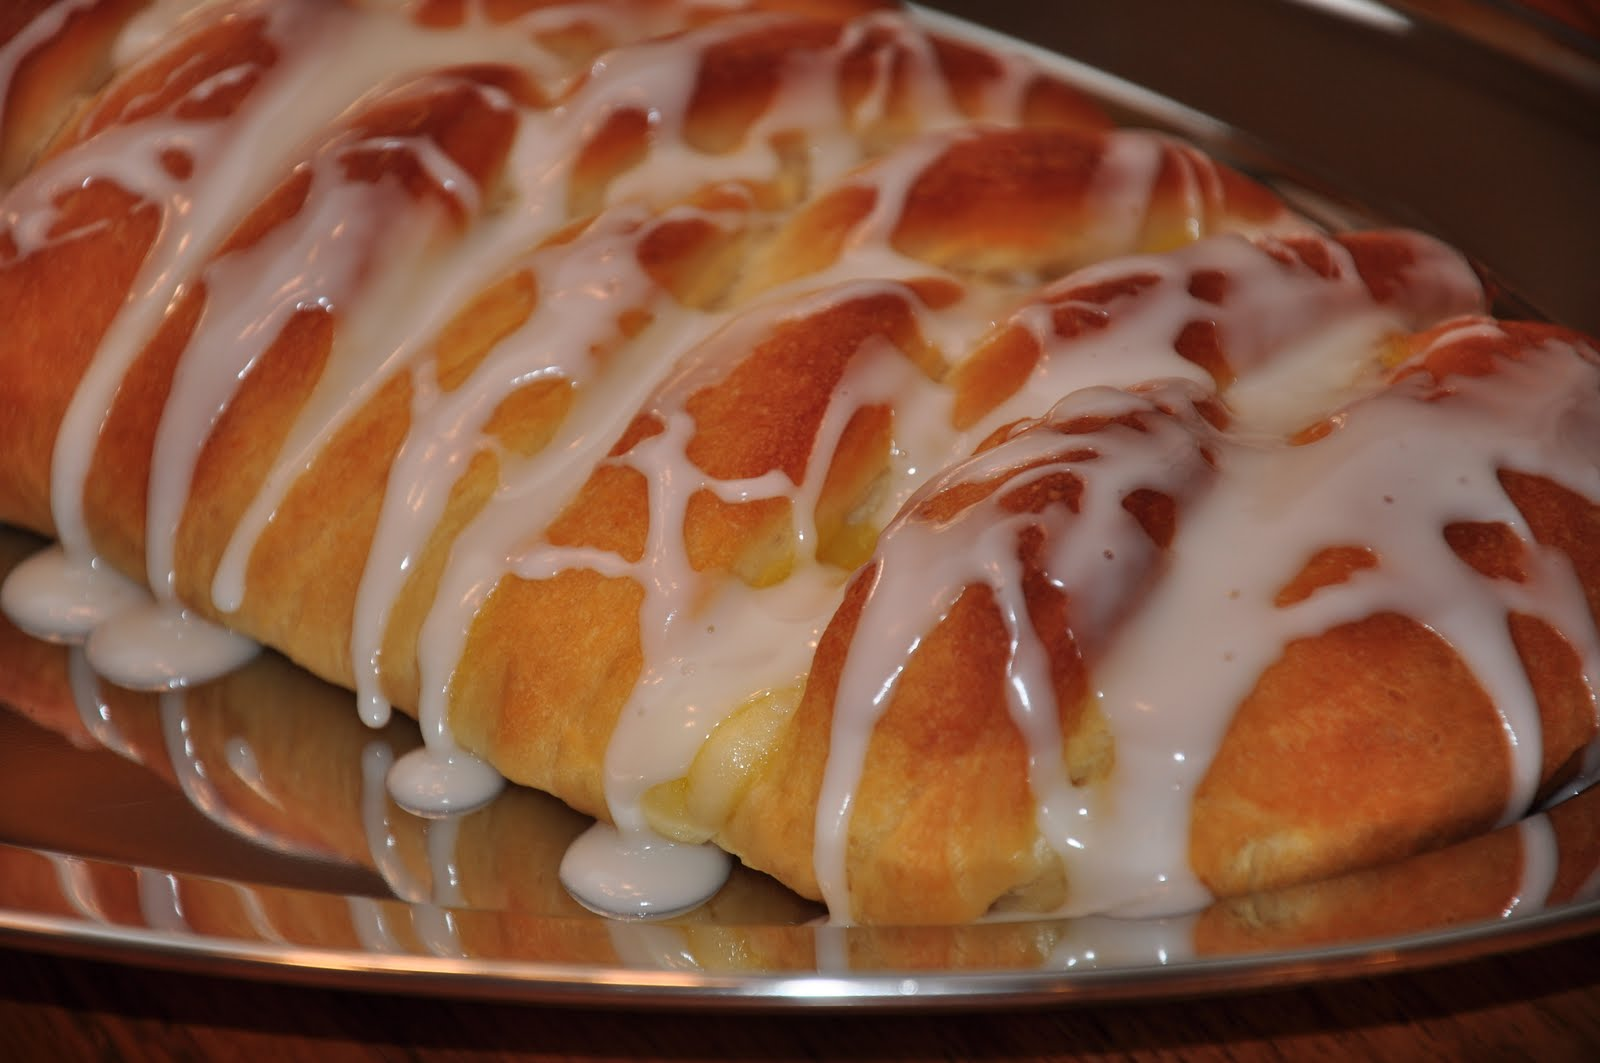 The Changeable Table: Braided Lemon Bread